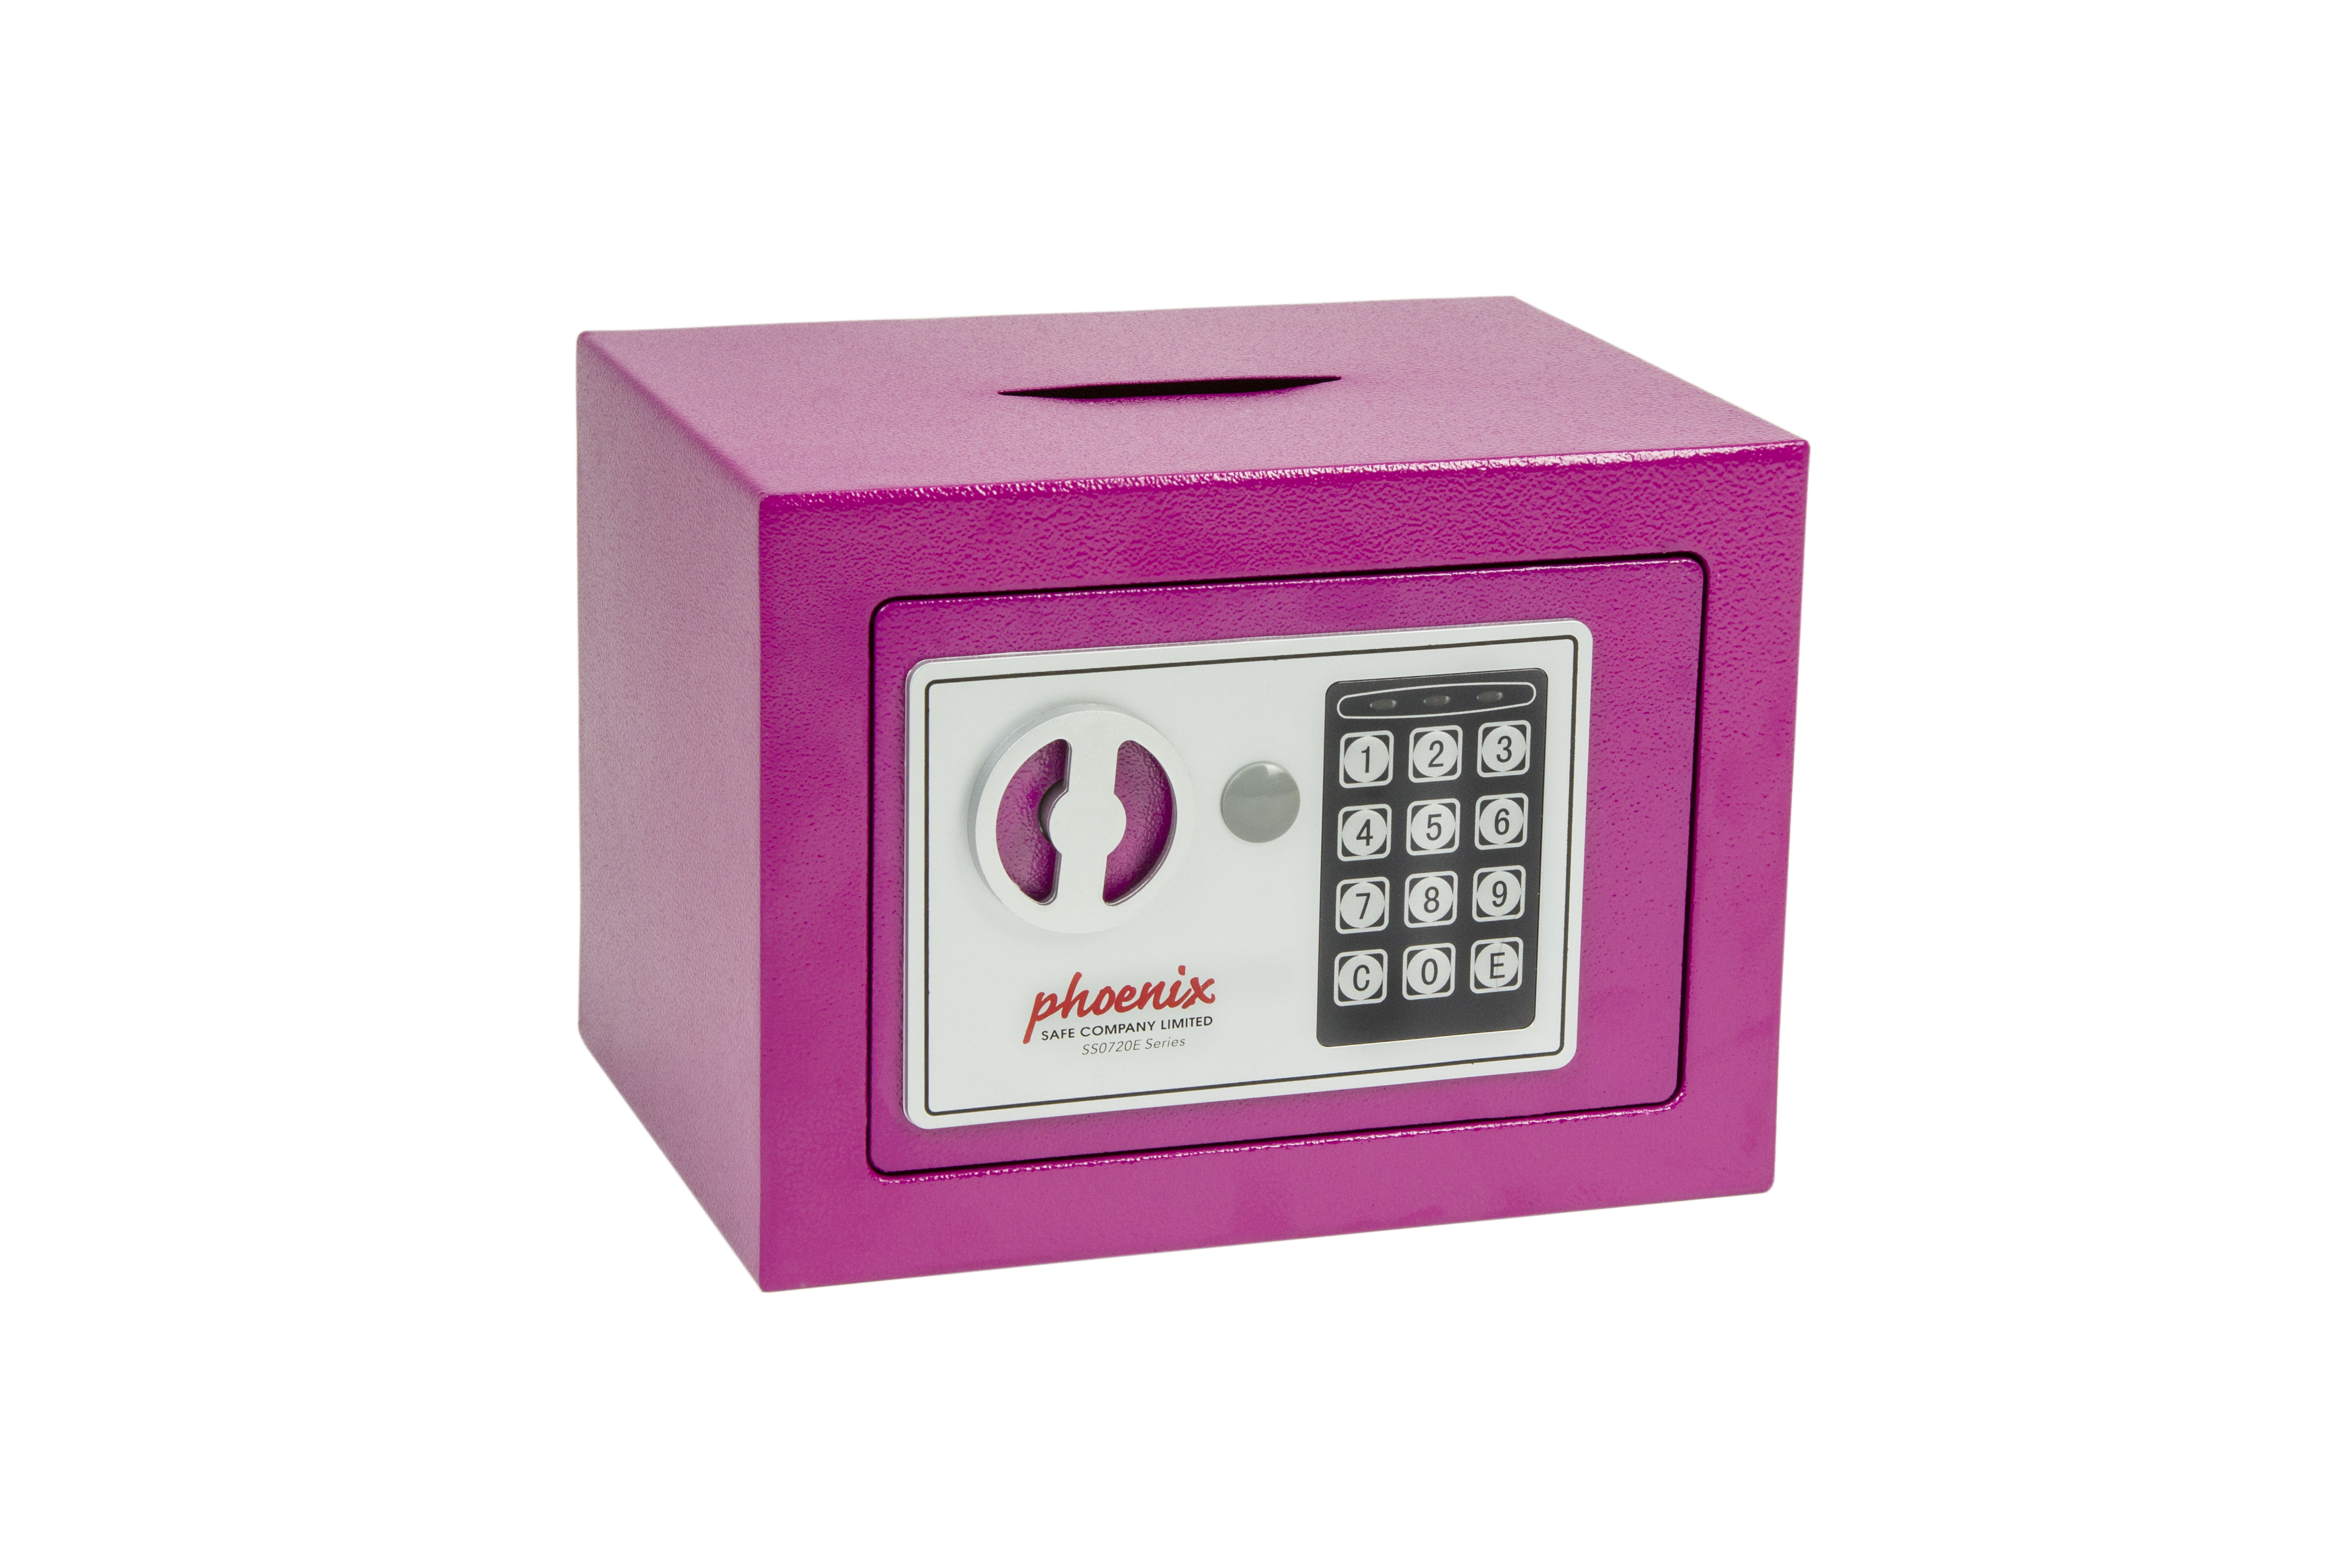 Phoenix Compact Home Security Safe Electronic Lock and Deposit Slot Pink SS0721EPD